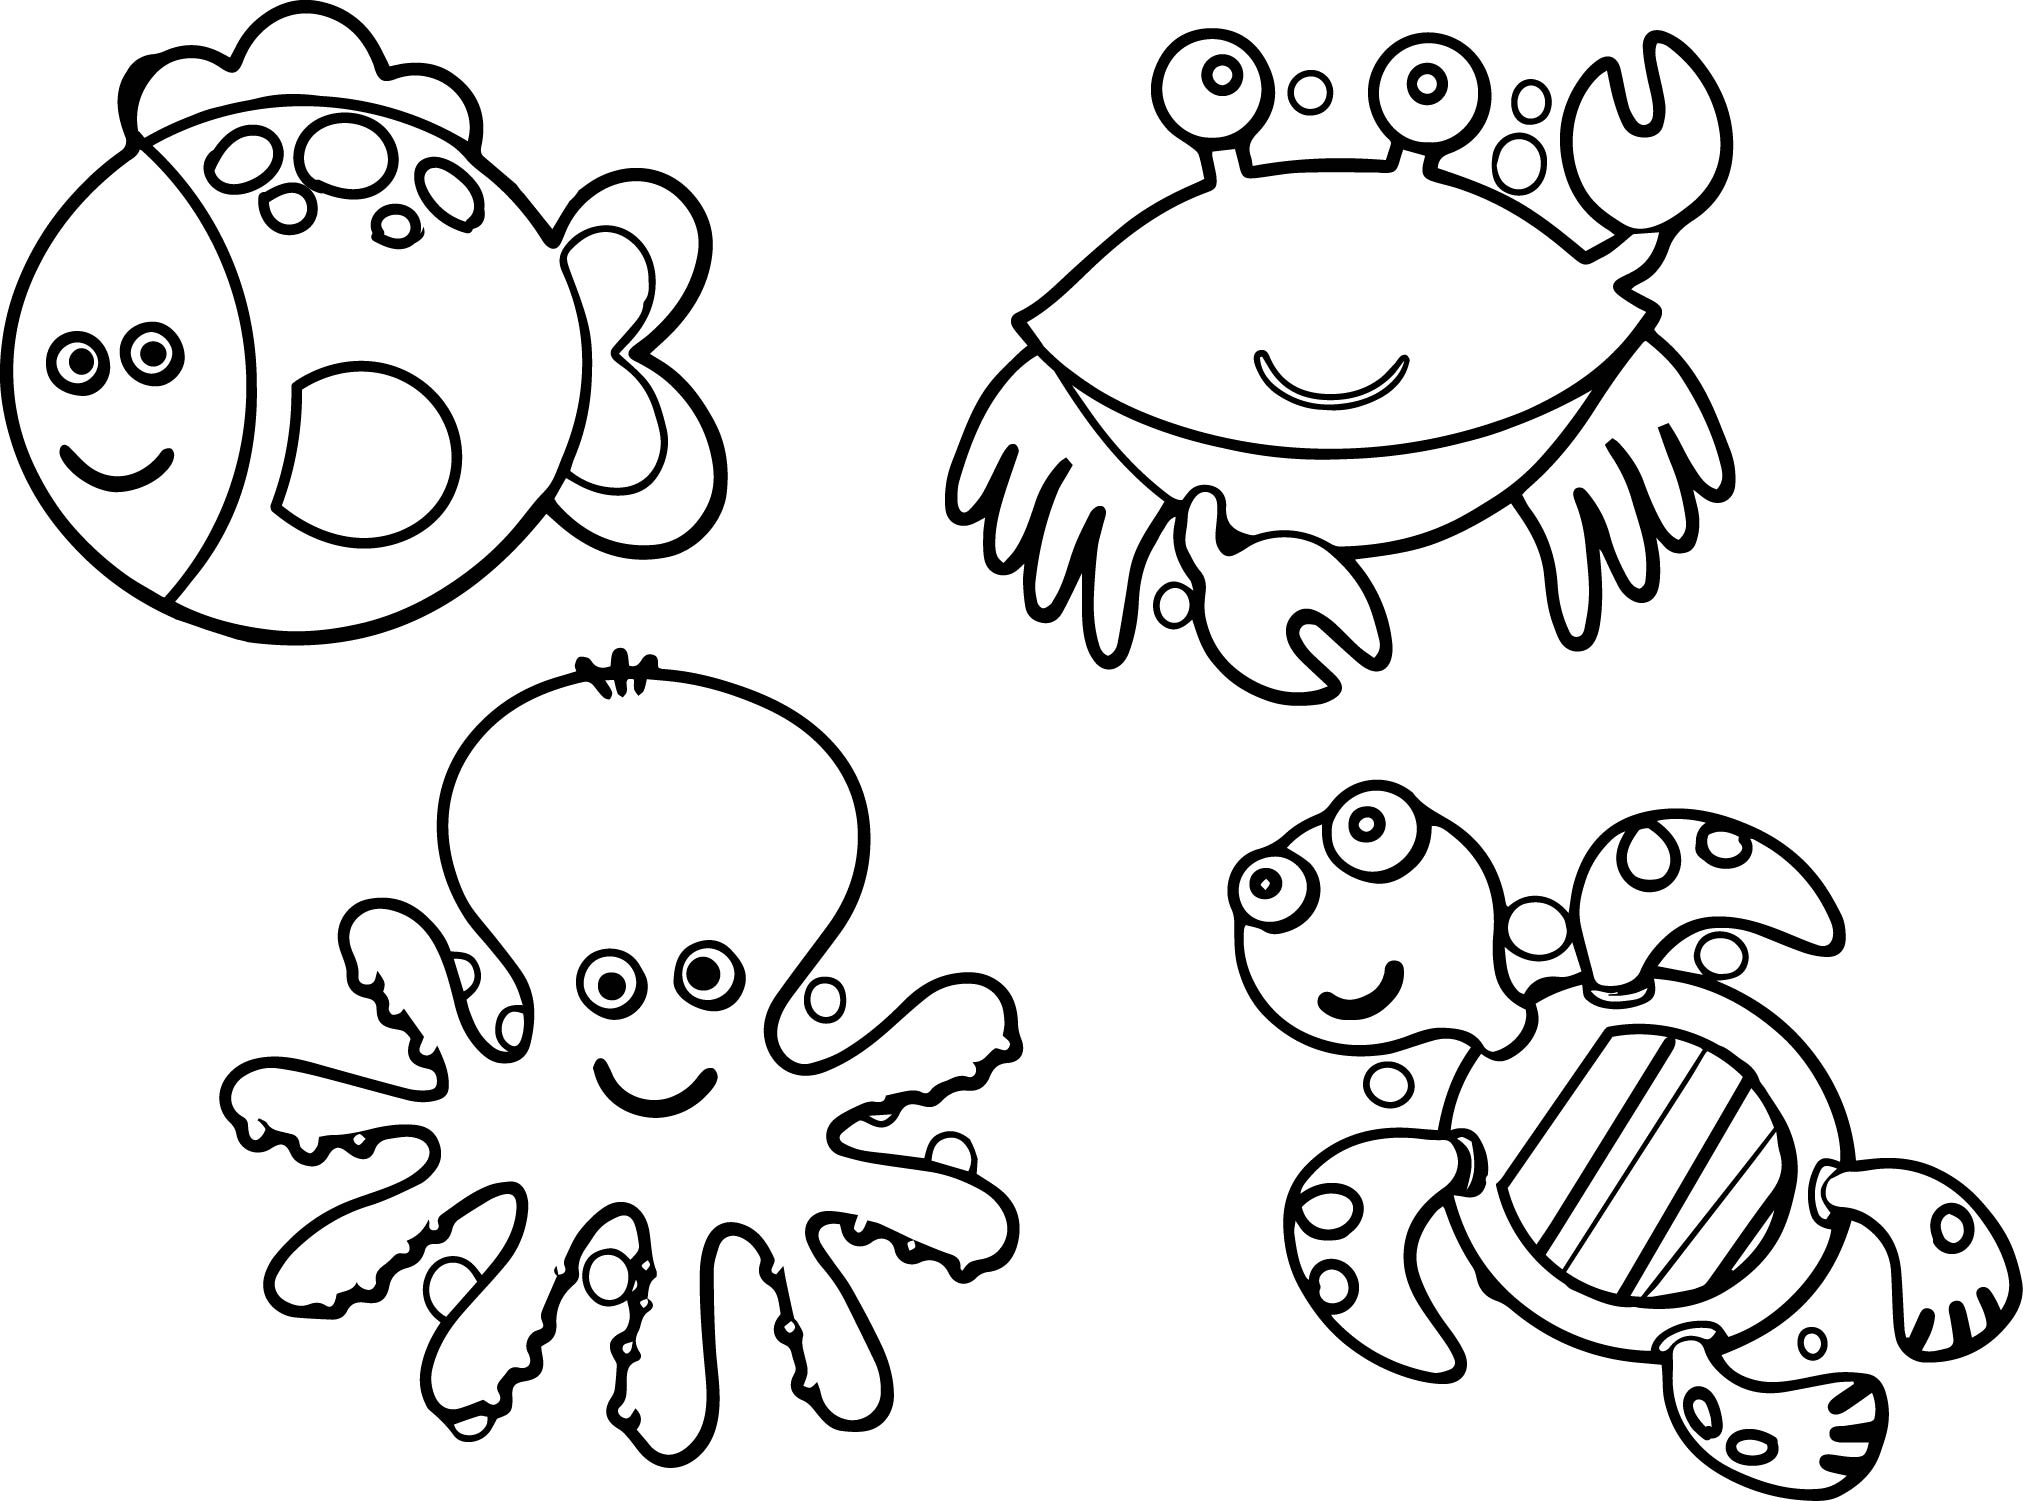 real coloring pages real steel coloring pages coloring pages to download and coloring pages real